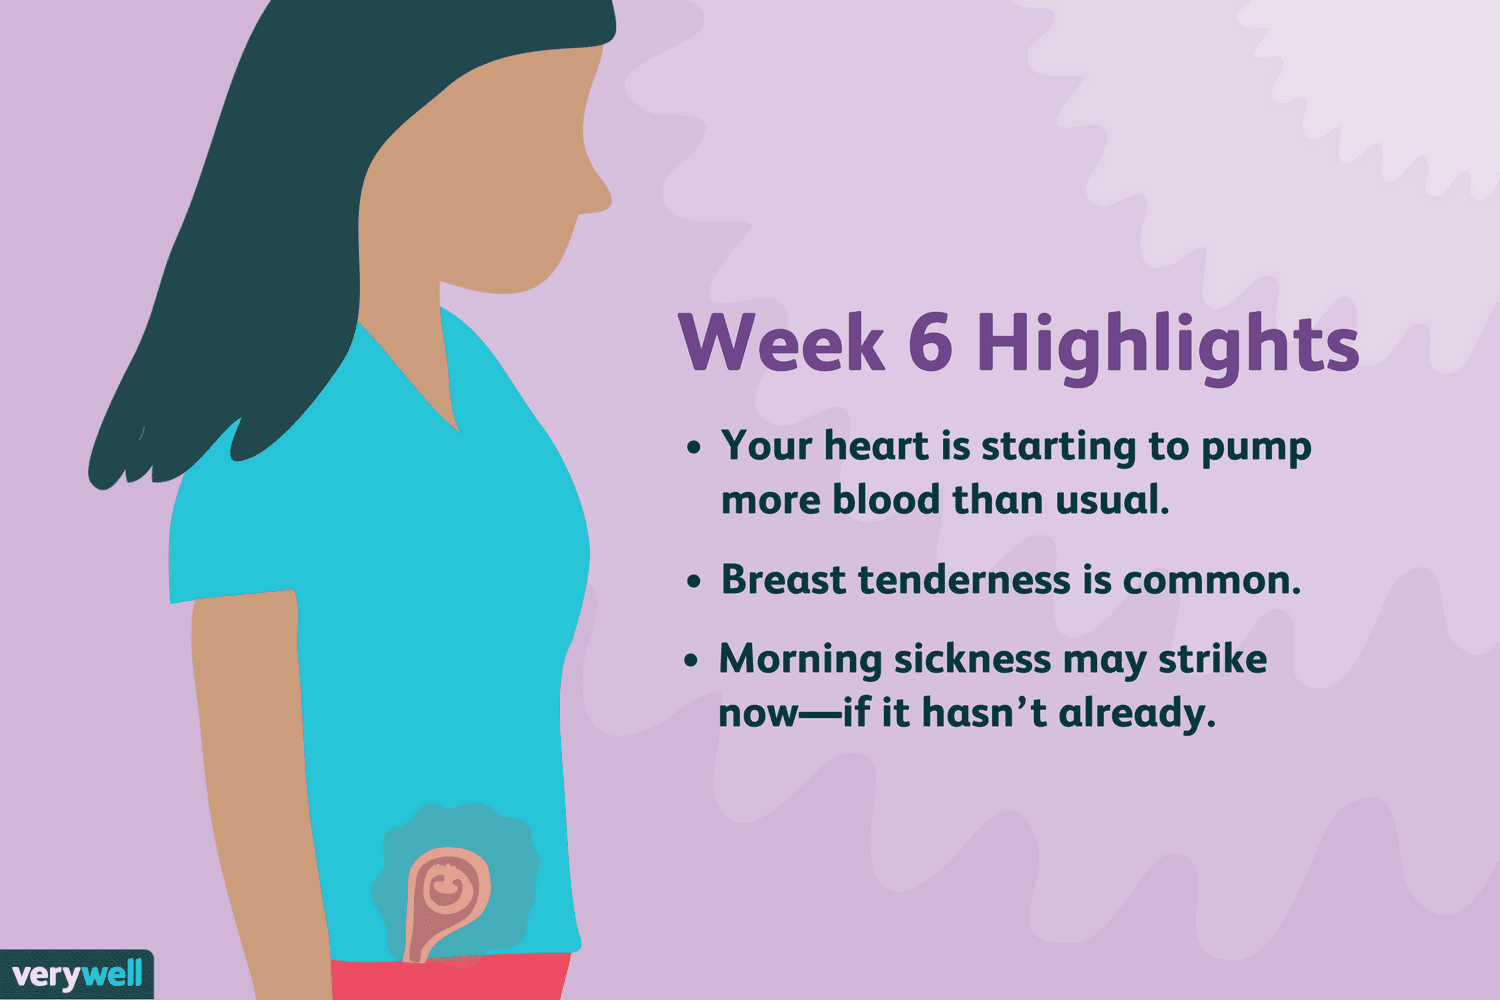 6 Weeks Pregnant: Symptoms, Baby Development, and More